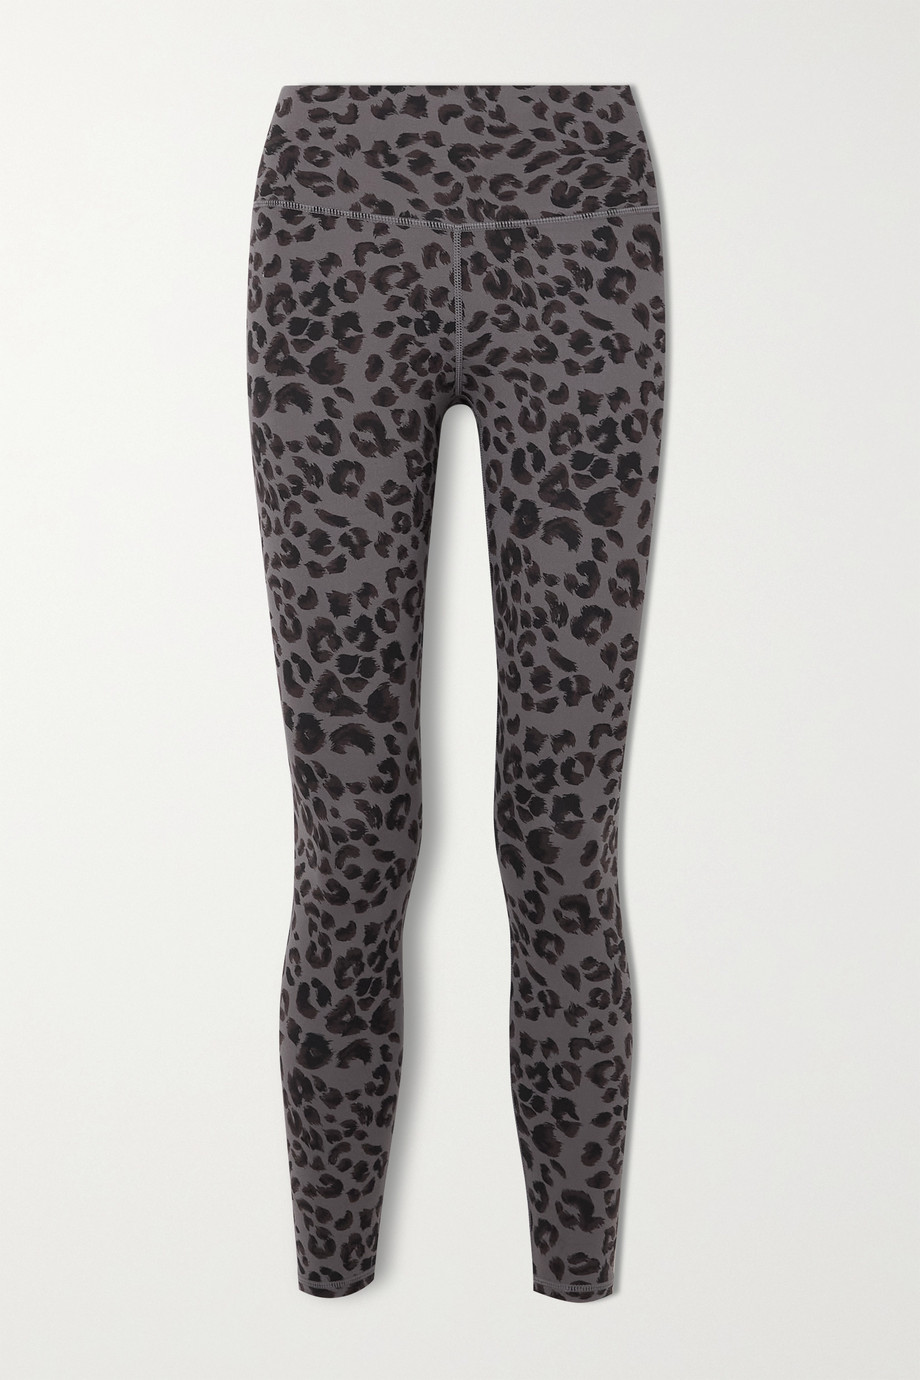 VARLEY Century printed stretch leggings